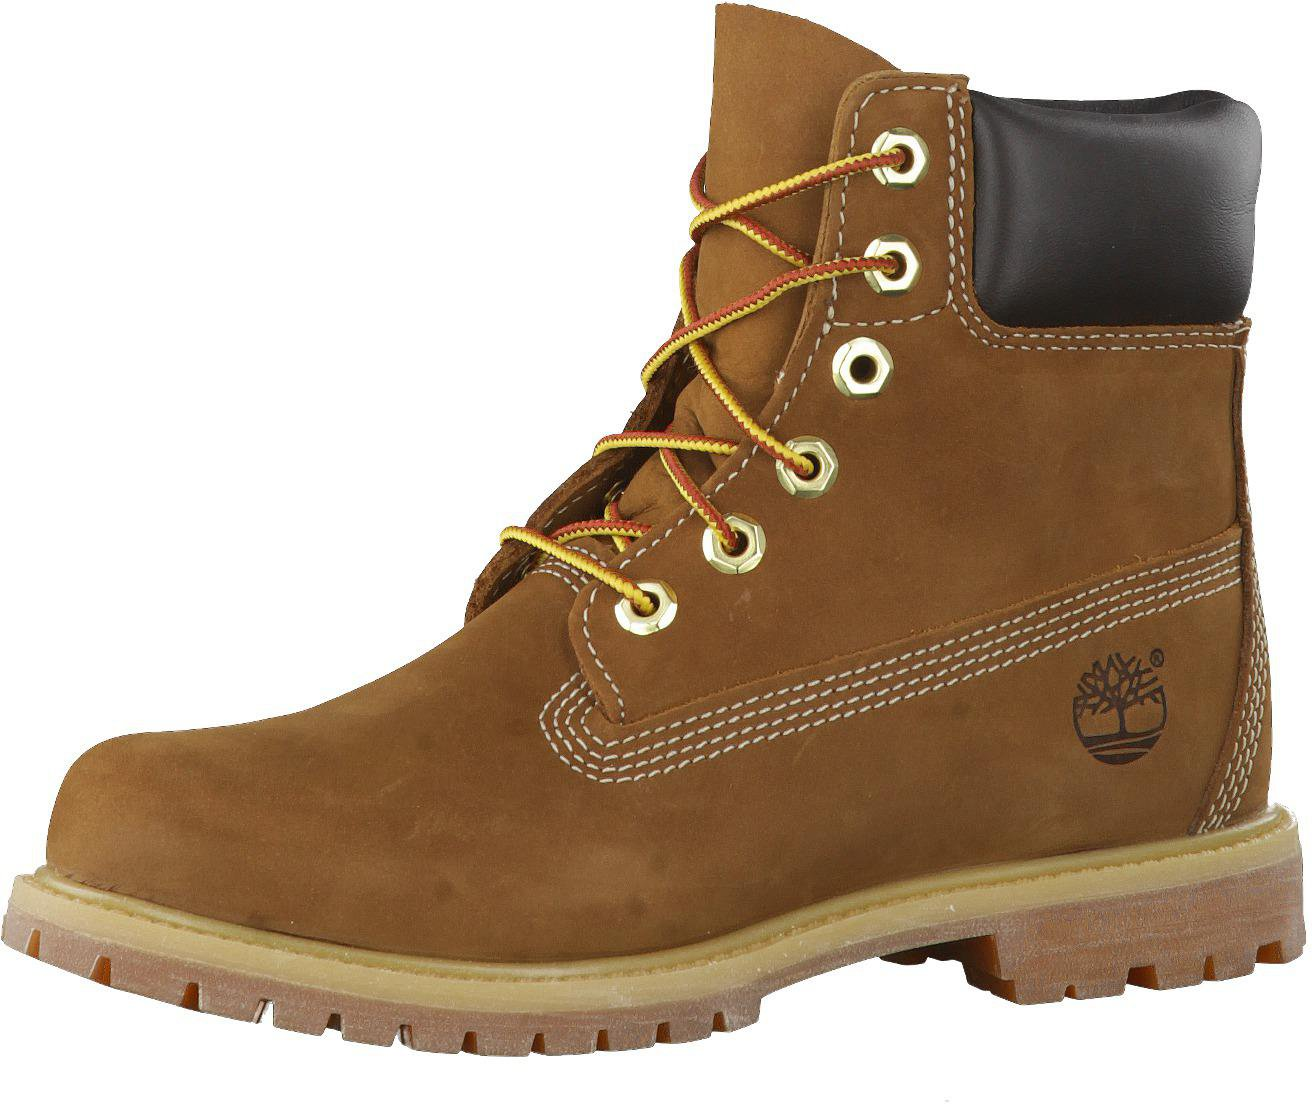 separation shoes 98e3e 1774c Timberland Stiefel Damen